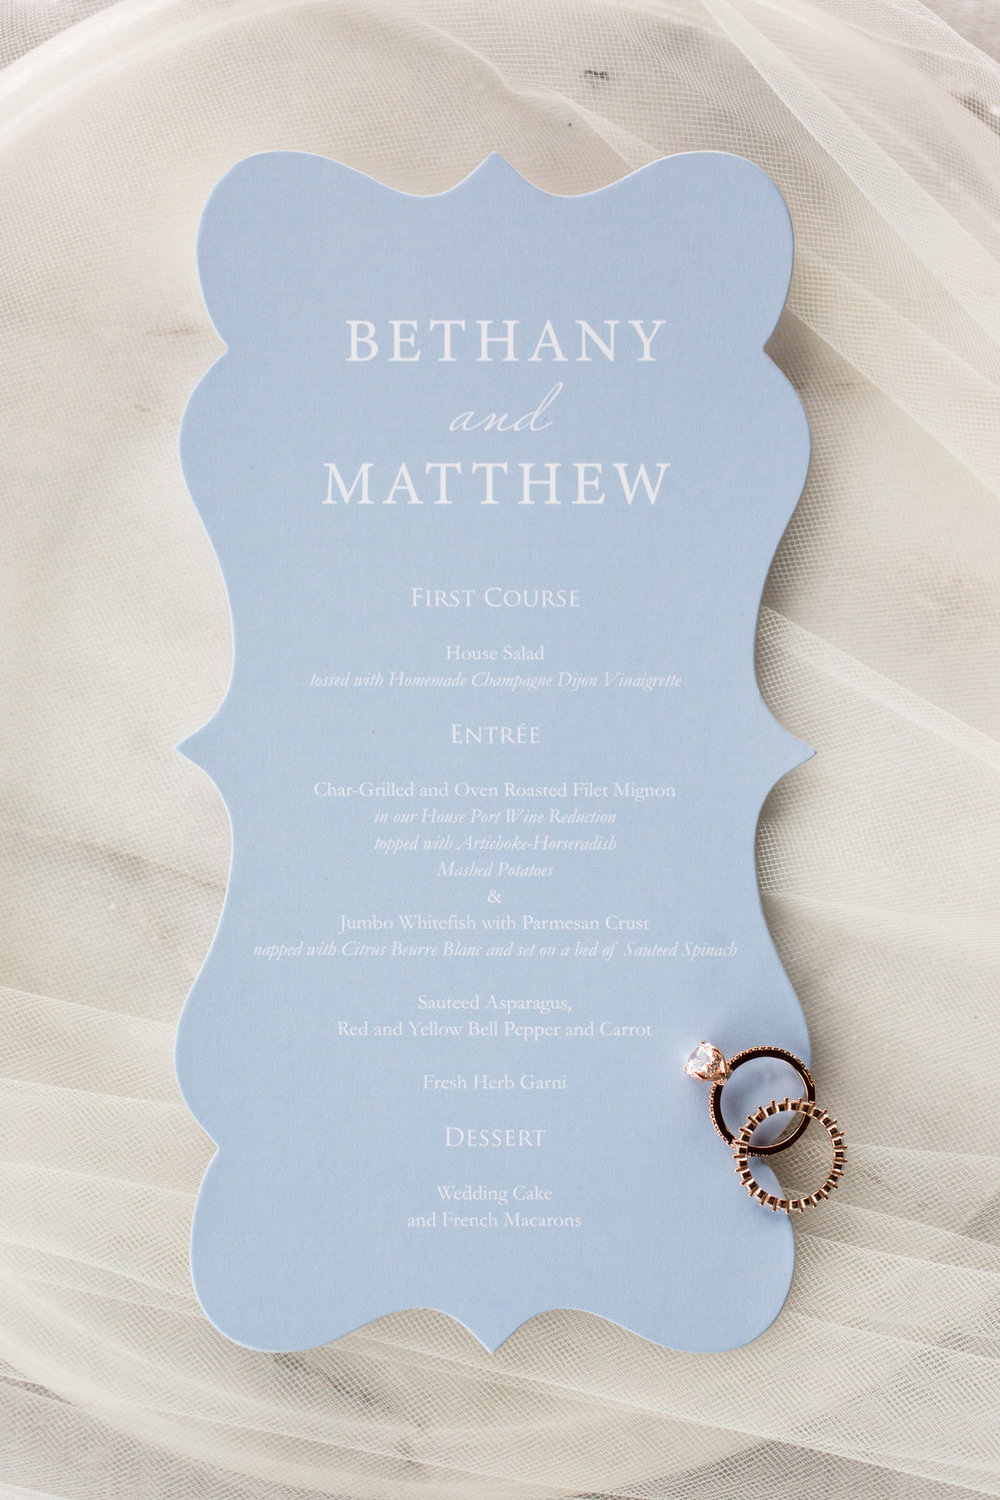 Baby Blue Wedding Invitation Chicago Wedding Meghan McCarthy Photography